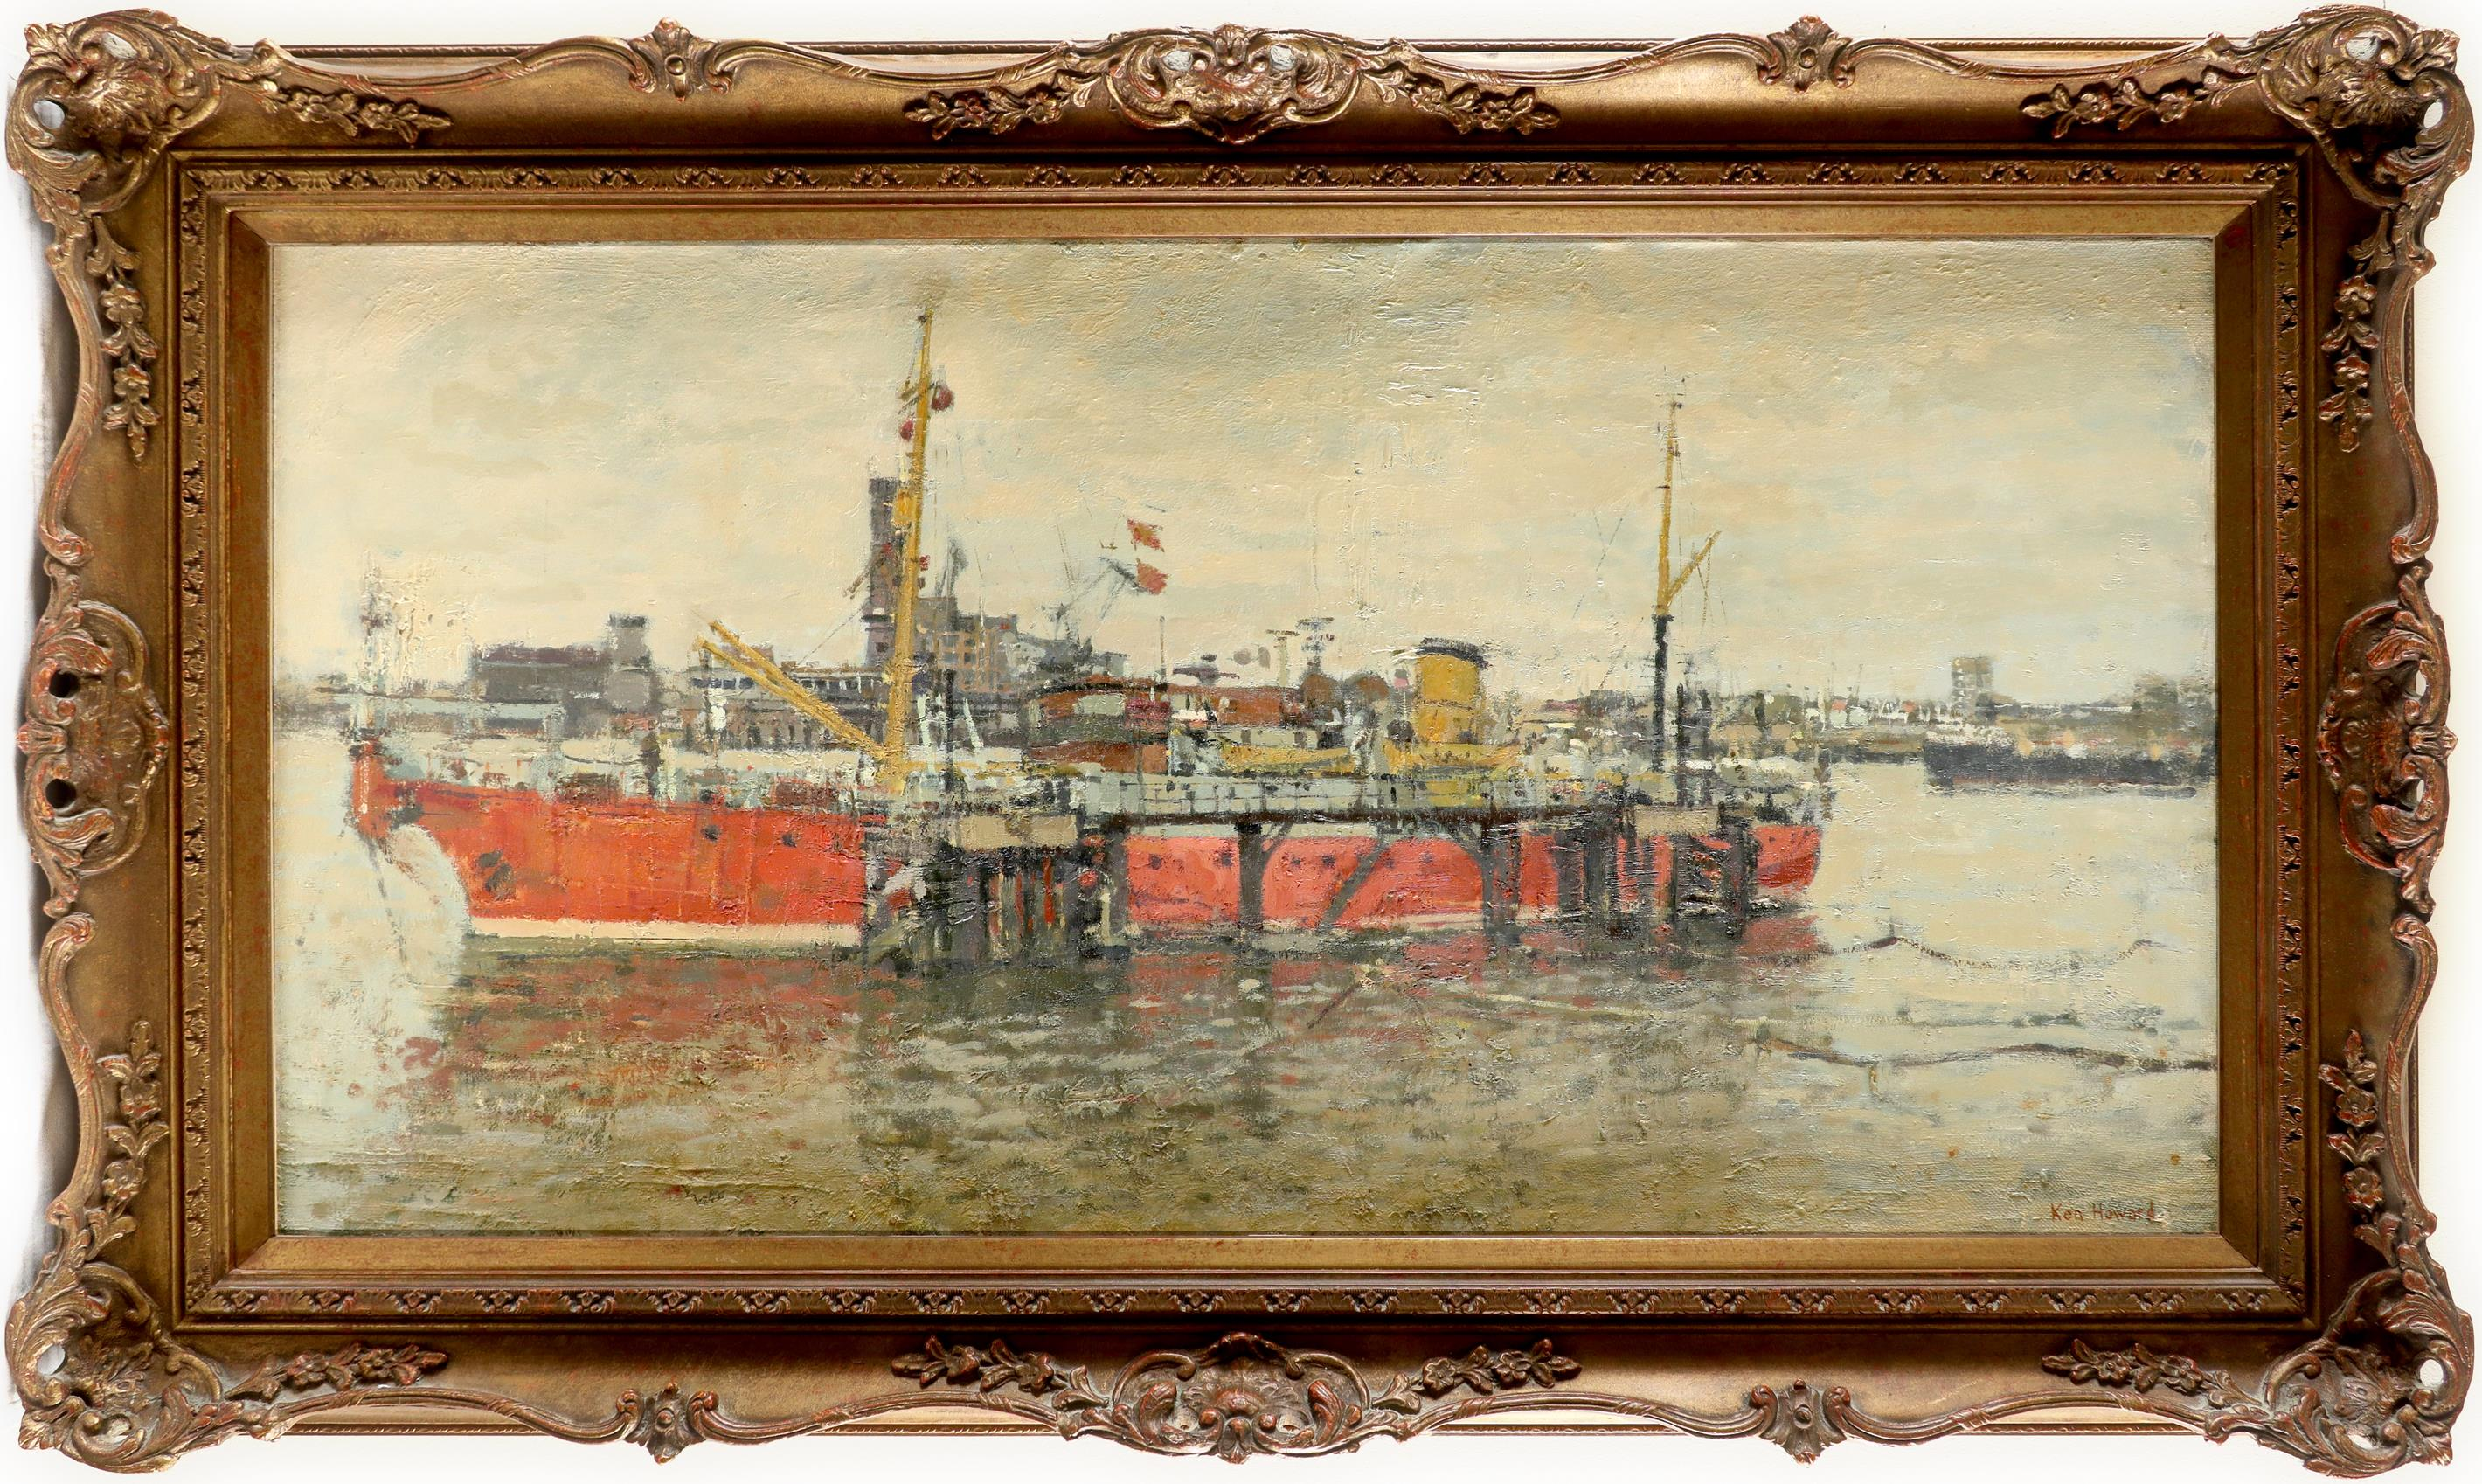 ‡Ken Howard OBE, RA (b.1932) The cable ship Iris moored at Greenwich Signed Ken Howard (lower right) - Image 2 of 3